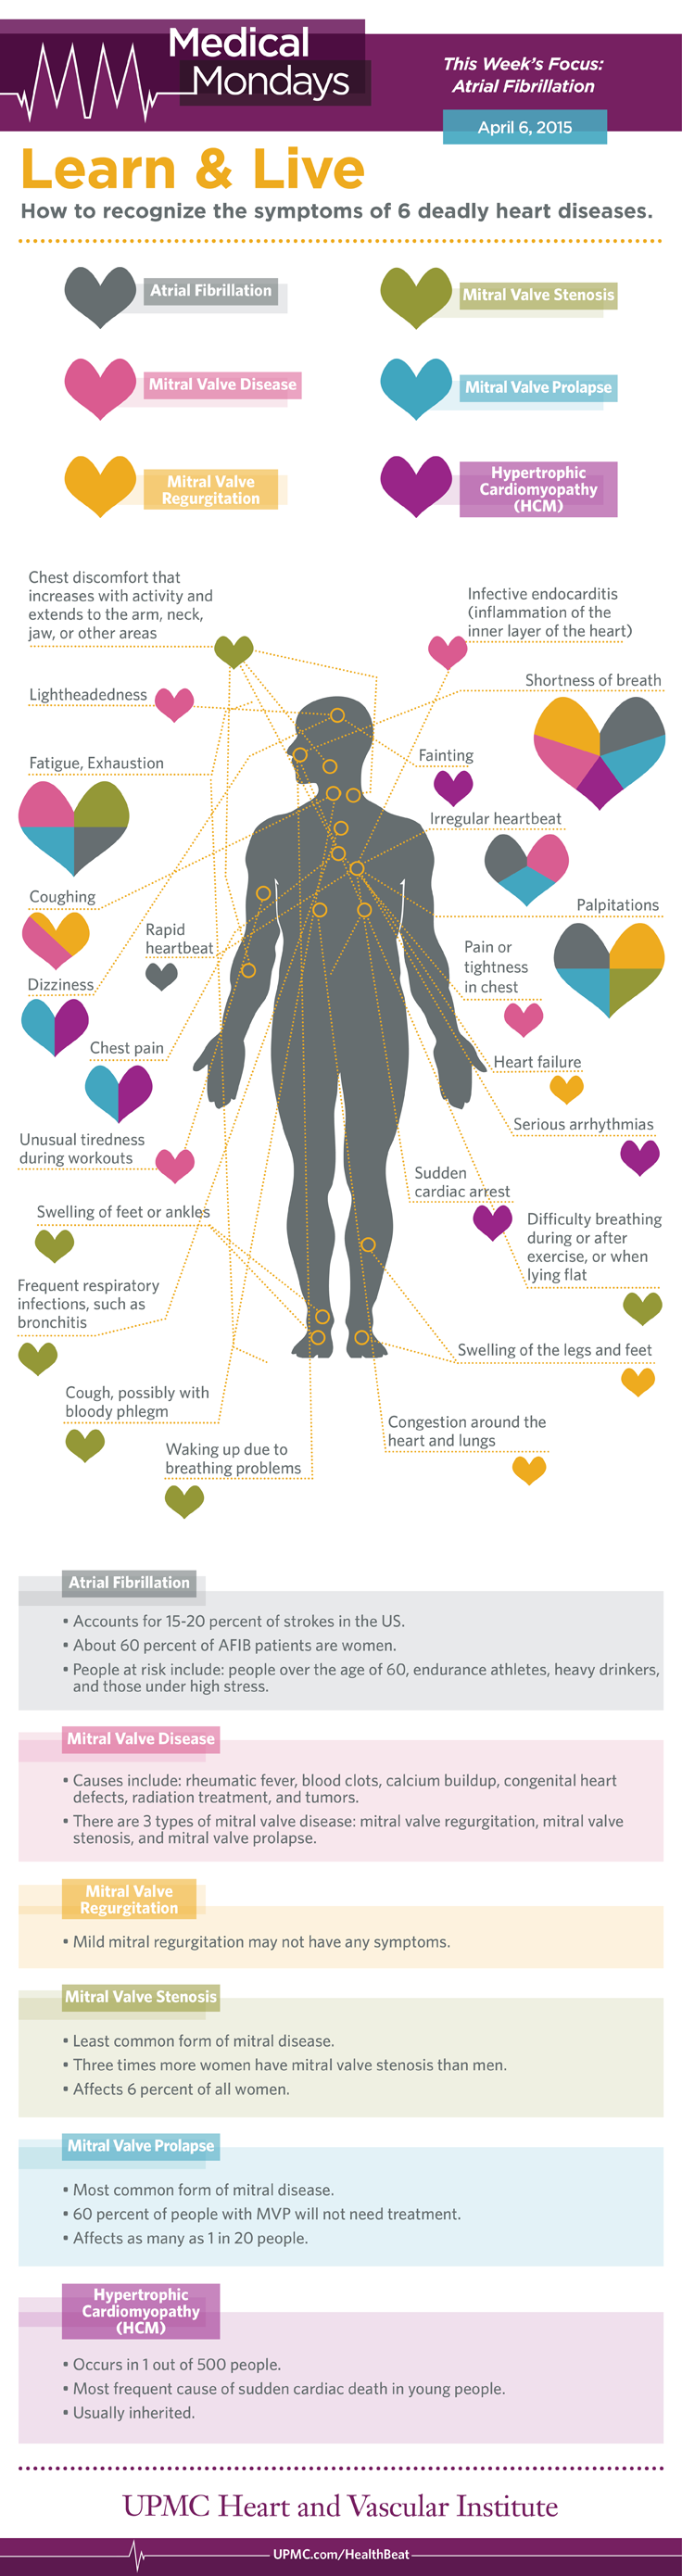 Learn how to spot the symptoms of six deadly heart diseases, including atrial fibrillation, mitral valve disease, and HCM.